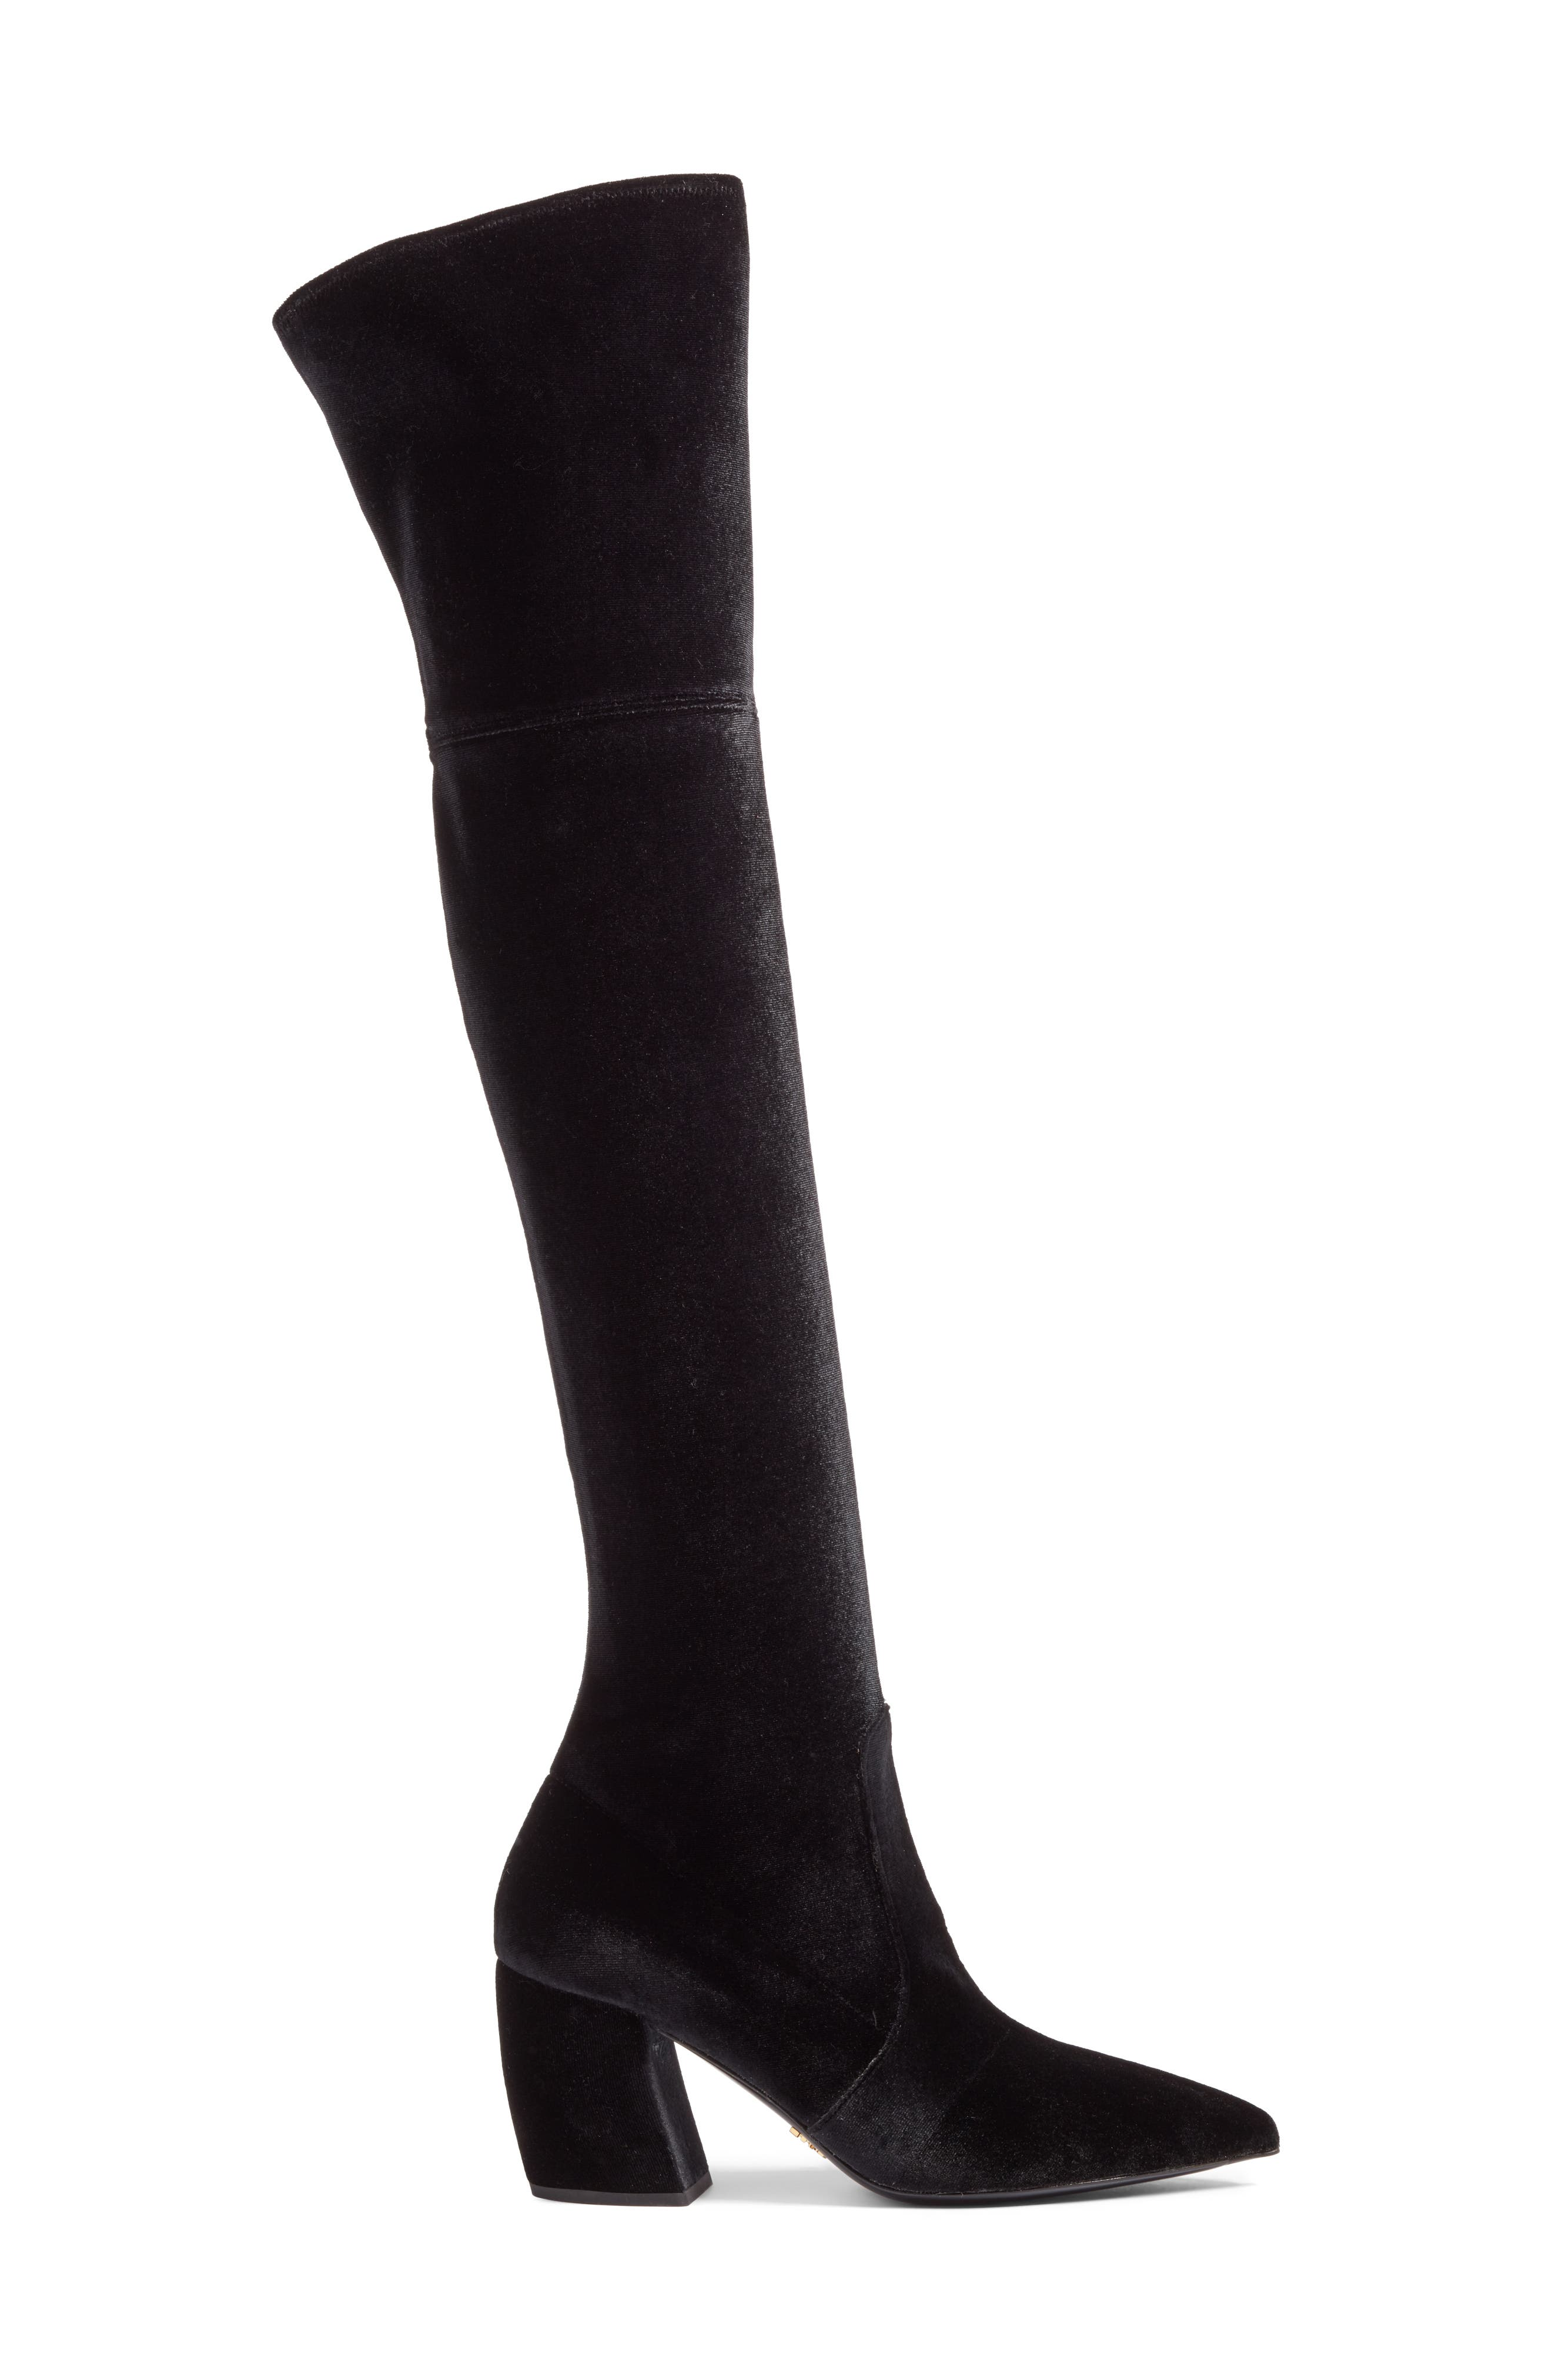 Over the Knee Boot,                             Alternate thumbnail 3, color,